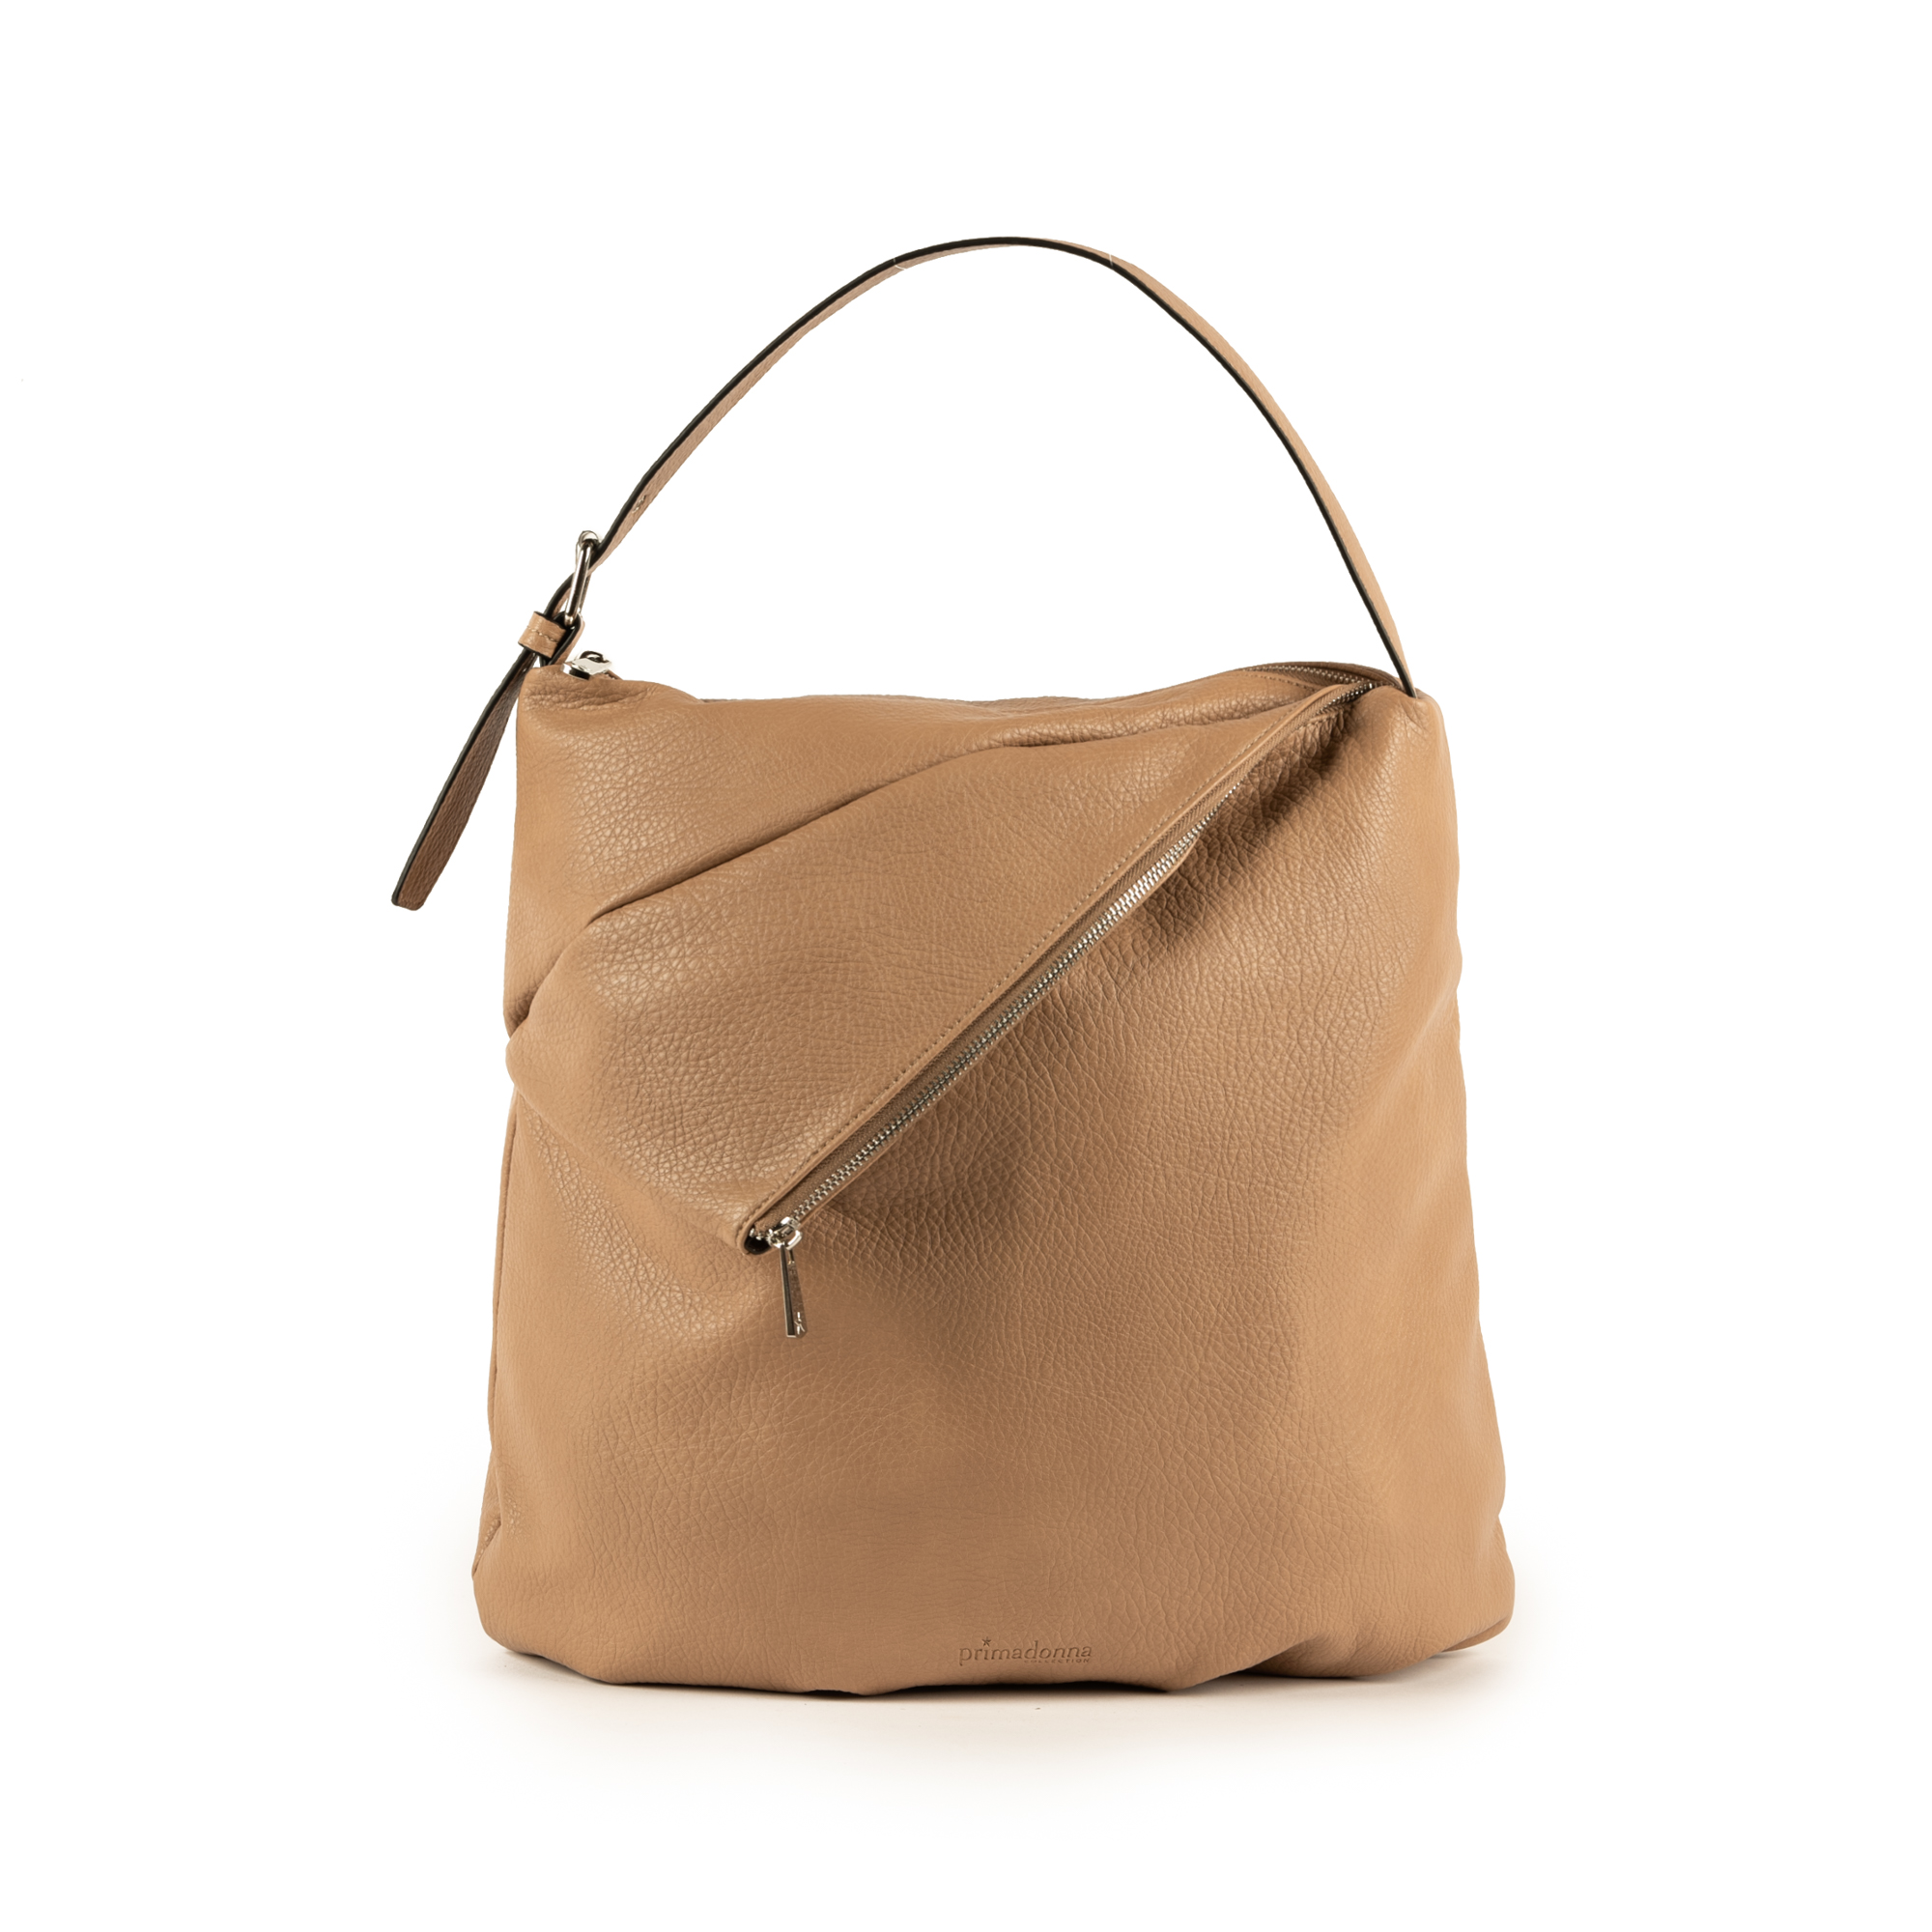 Maxi-bag de ecopiel en color beige